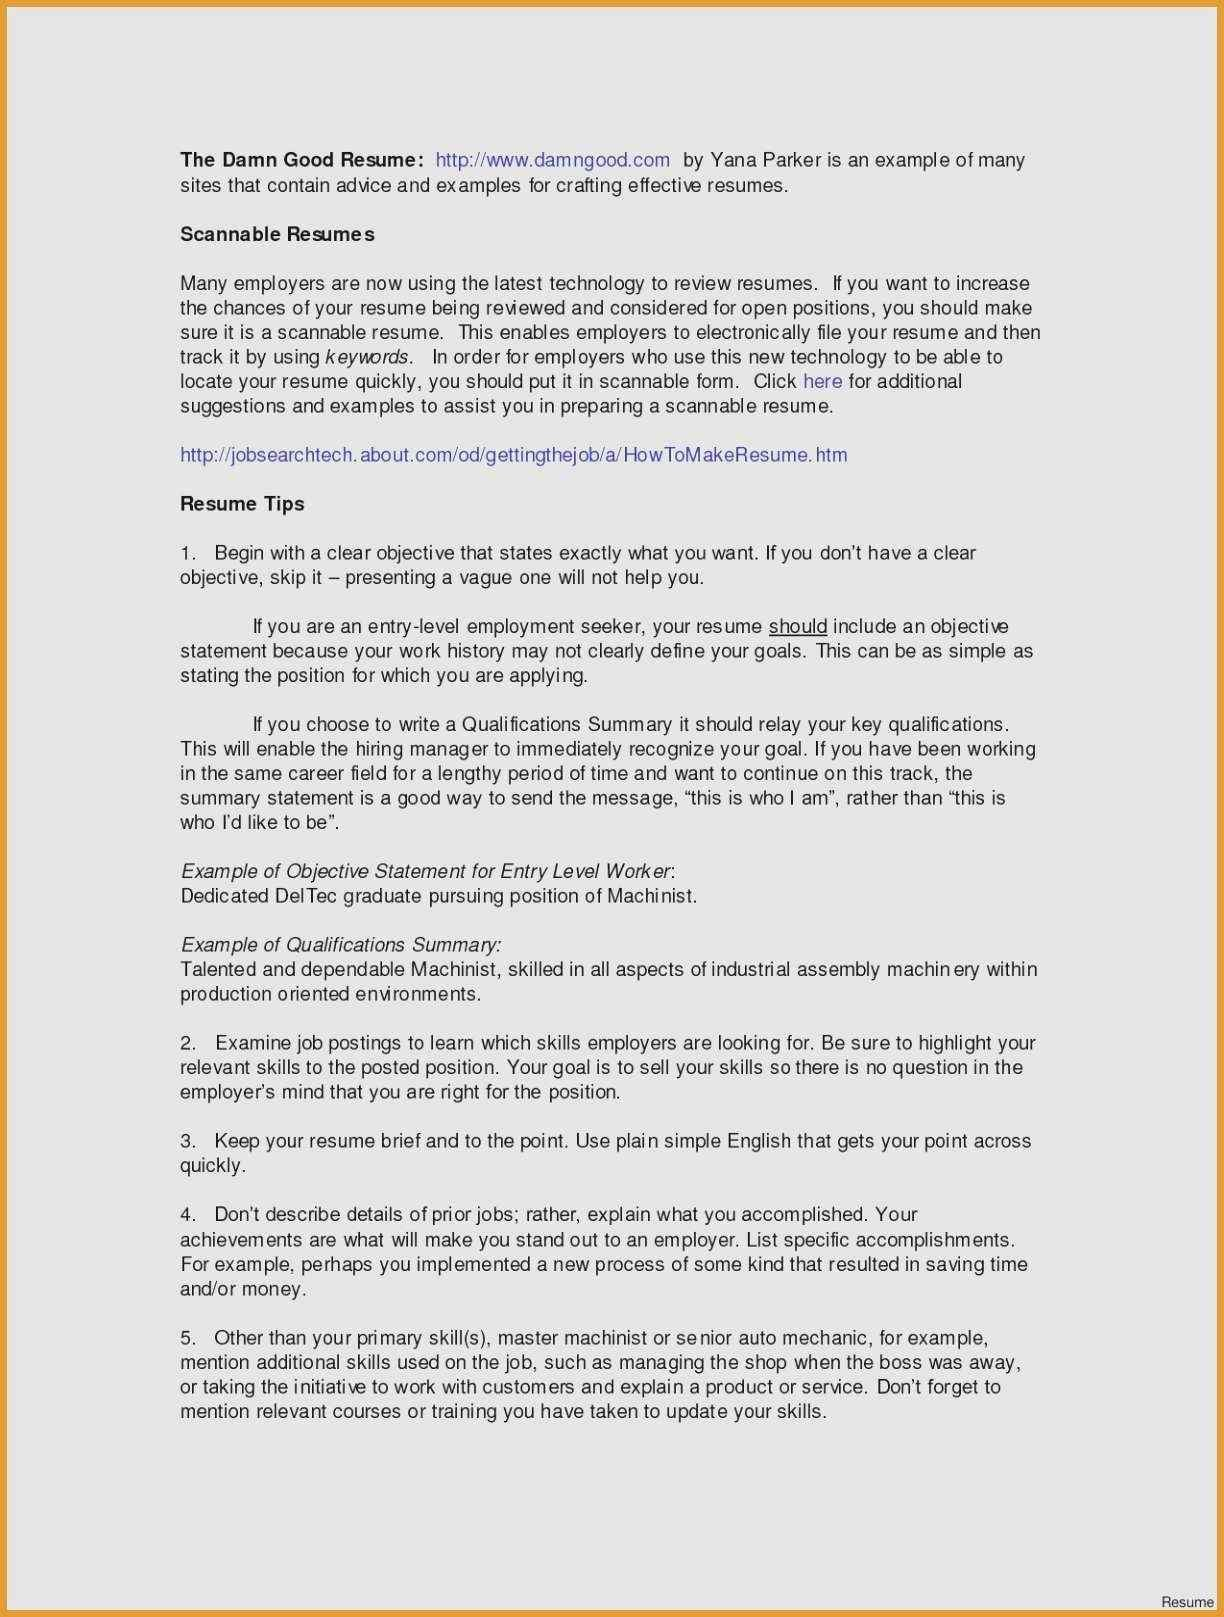 Career Change Objective Statement - Career Change Resume Objective Statement Examples New Career Change